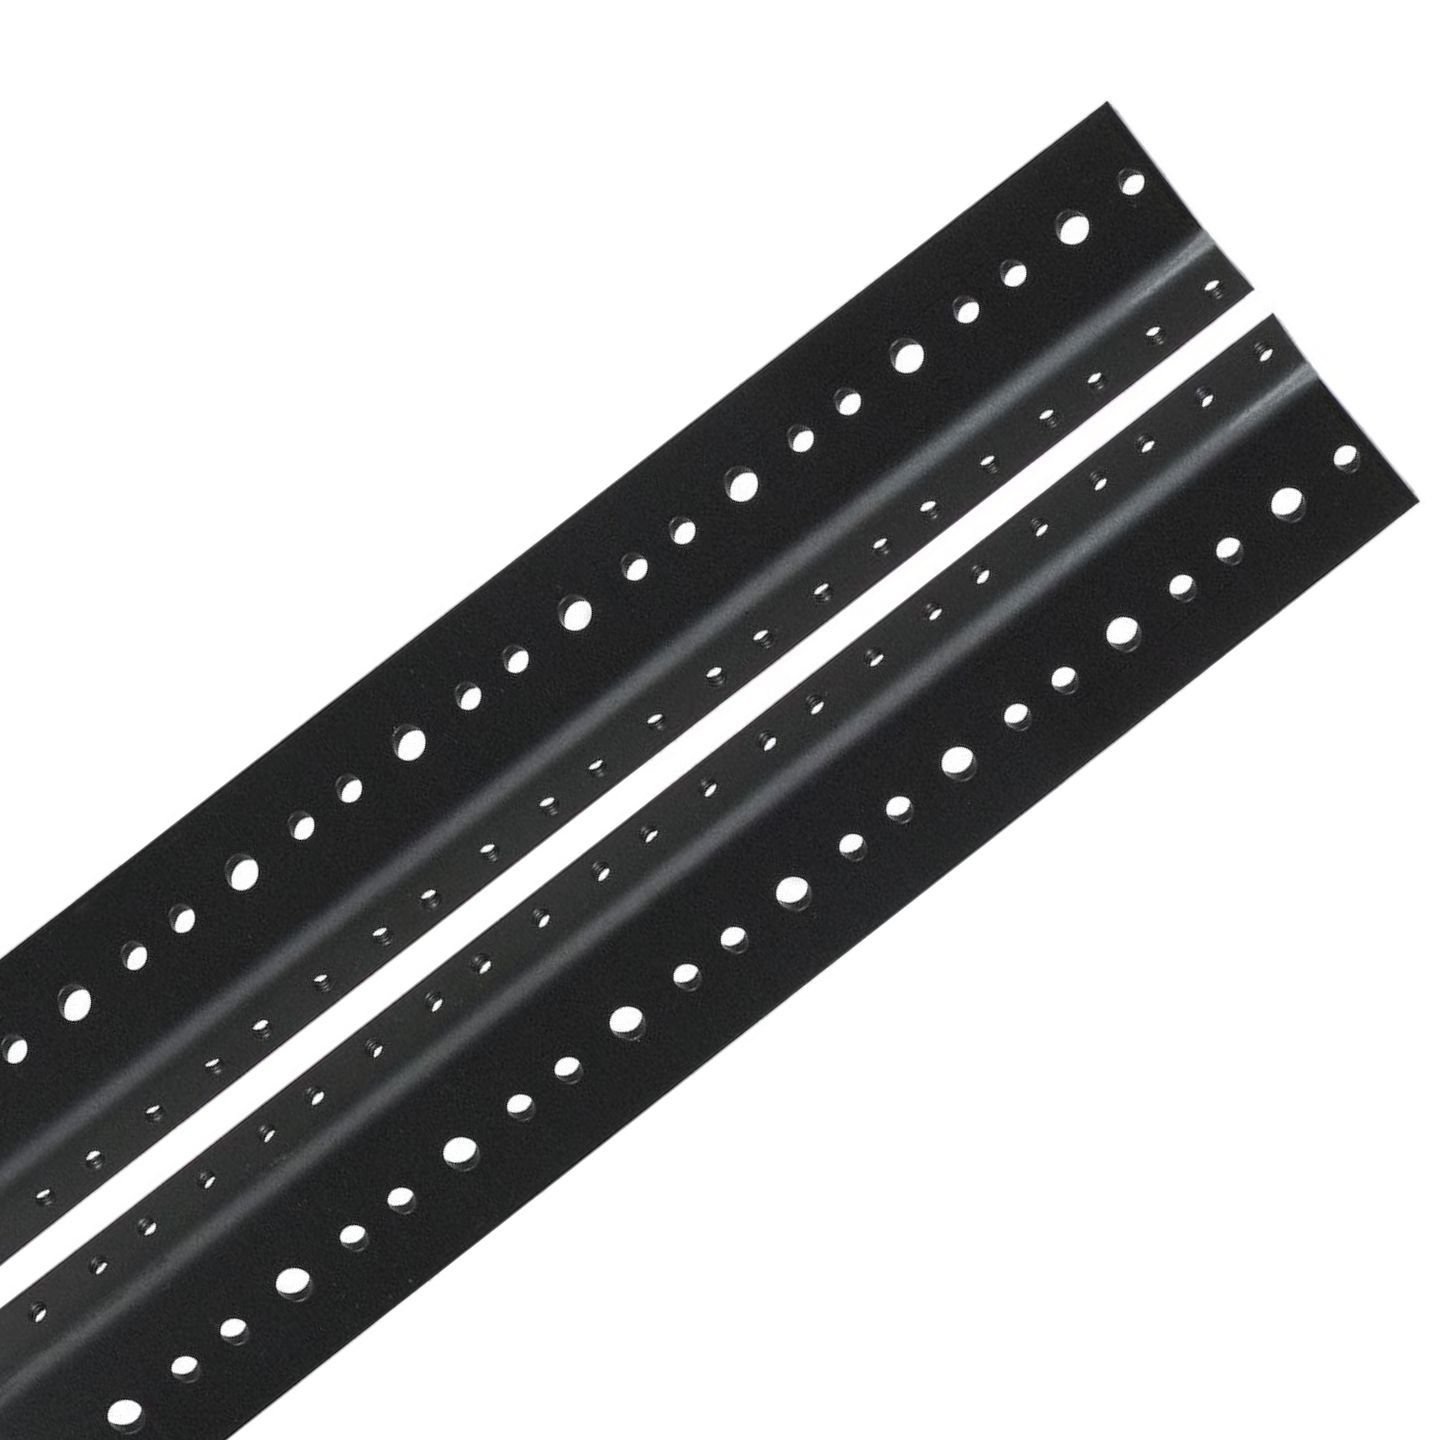 Reliable Hardware Company RH-6-SRR-A 6U, Full Hole 6 Space Rack Rail Pair by Reliable Hardware Company